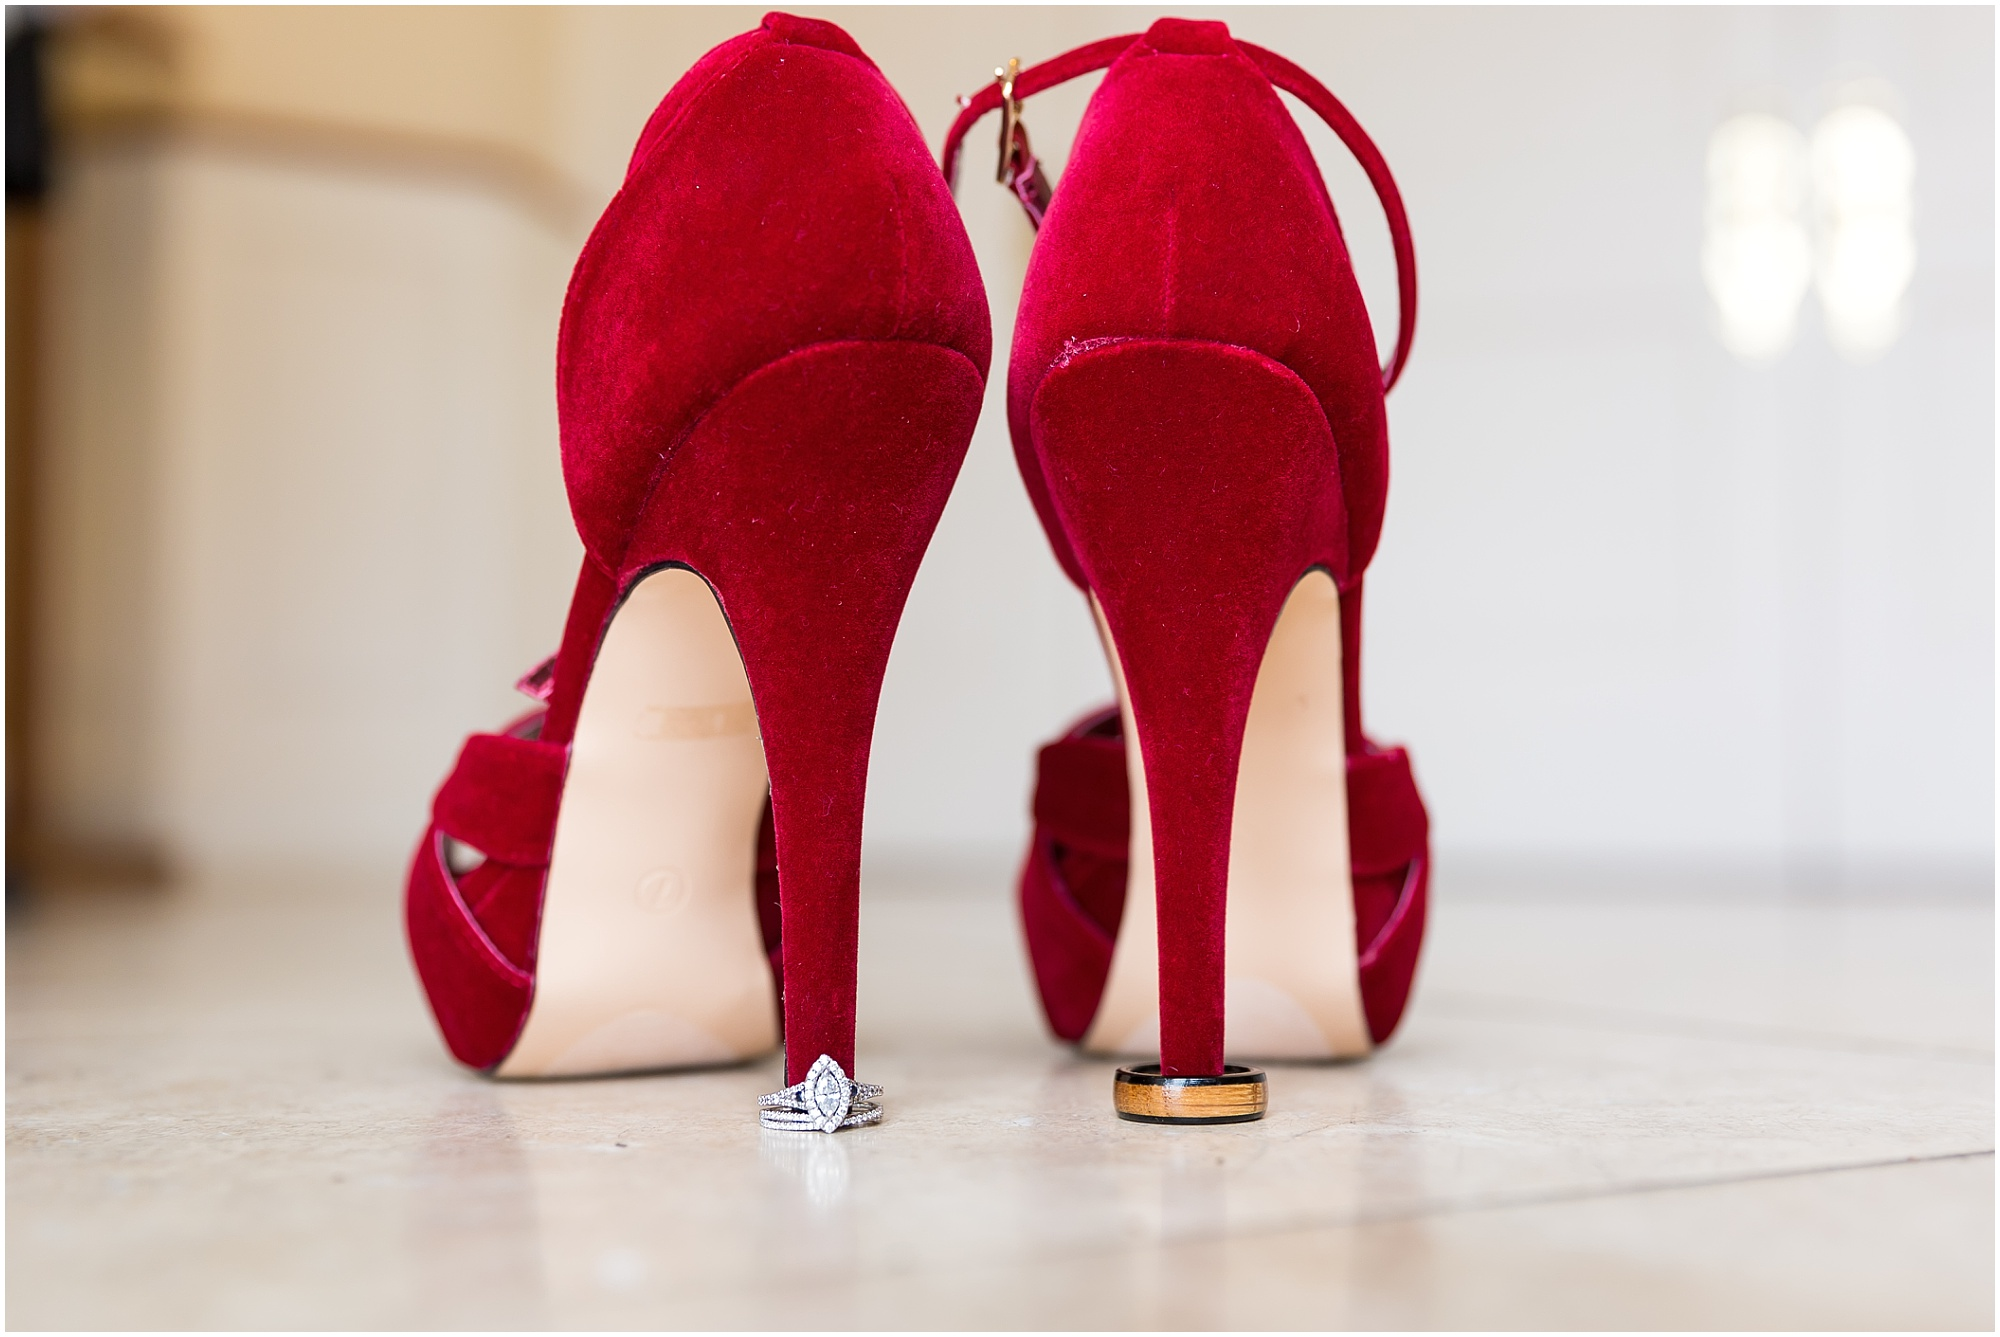 Red velvet bridal shoes - Fall wedding in Waco, TX - Jason & Melaina Photography - http://jasonandmelaina.com